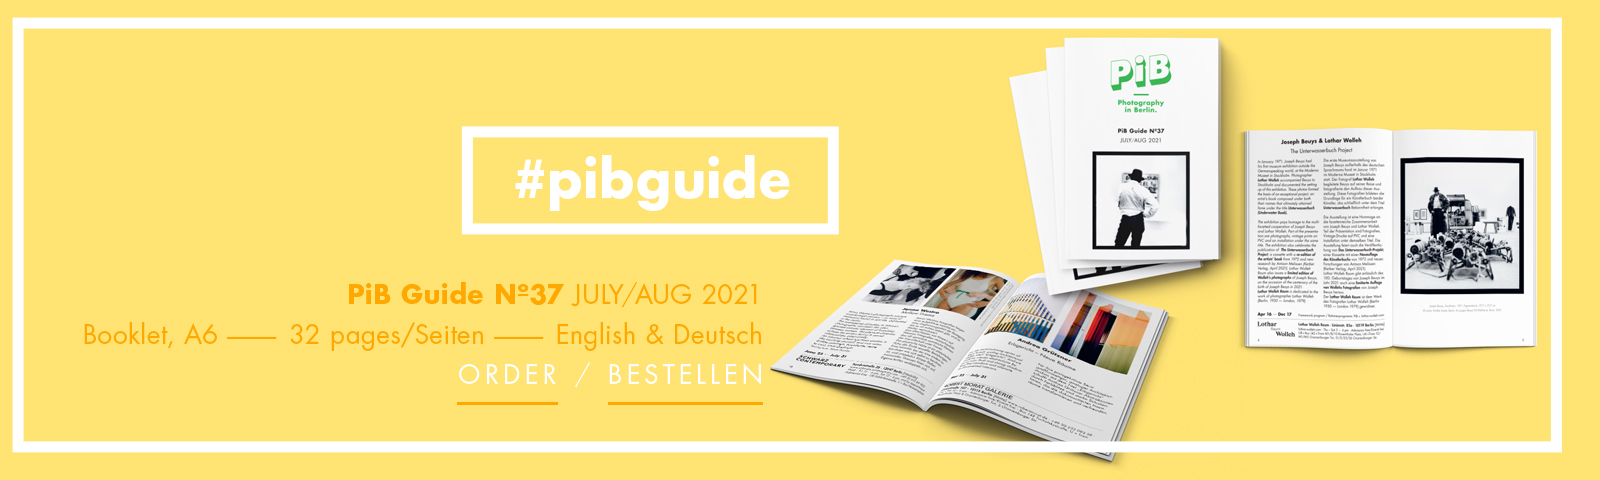 Images: PiB Guide Nº37 JULY/AUG 2021 © PiB Photography In Berlin. Cover Photo & Photo On Right Double Page (PiB Guide Nº37 Cover + Pp. 4 & 5): Joseph Beuys, Stockholm, 1971, Pigmentdruck, 37,7 × 37,7 Cm © Lothar Wolleh Estate, Berlin, Für Joseph Beuys VG Bild-Kunst, Bonn, 2021. Duo Exhibition »The Unterwasserbuch Project« At Lothar Wolleh Raum In Berlin-Mitte. +++ Photos On Bottom Double Page (PiB Guide Nº37 Pp. 18 & 19, From Left To Right): 1) Jenna Westra, Untitled (Lemon, Mirror), 2019, Silver Gelatin Print, 56 × 43 Cm, 3 + 2 AP © Jenna Westra, Courtesy SCHWARZ CONTEMPORARY, 2) Jenna Westra, Ribbon Tie, 2021, C-print, 66 × 53 Cm, 3 + 2 AP © Jenna Westra, Courtesy SCHWARZ CONTEMPORARY, 3) + 4) Erbgericht, Untitled 27, 2020 + Untitled 20, 2018 © Adnrea Grützner, Courtesy Robert Morat Galerie. +++ PiB Guide Editor / V.i.S.d.P. / Art Direction: Julia Schiller @julia.schiller_ · Ele Studio Berlin · Www.ele-studio.de +++ Printed On 100% Recycling Paper In Berlin-Köpenick By Altmann-druck, Many Thanks!